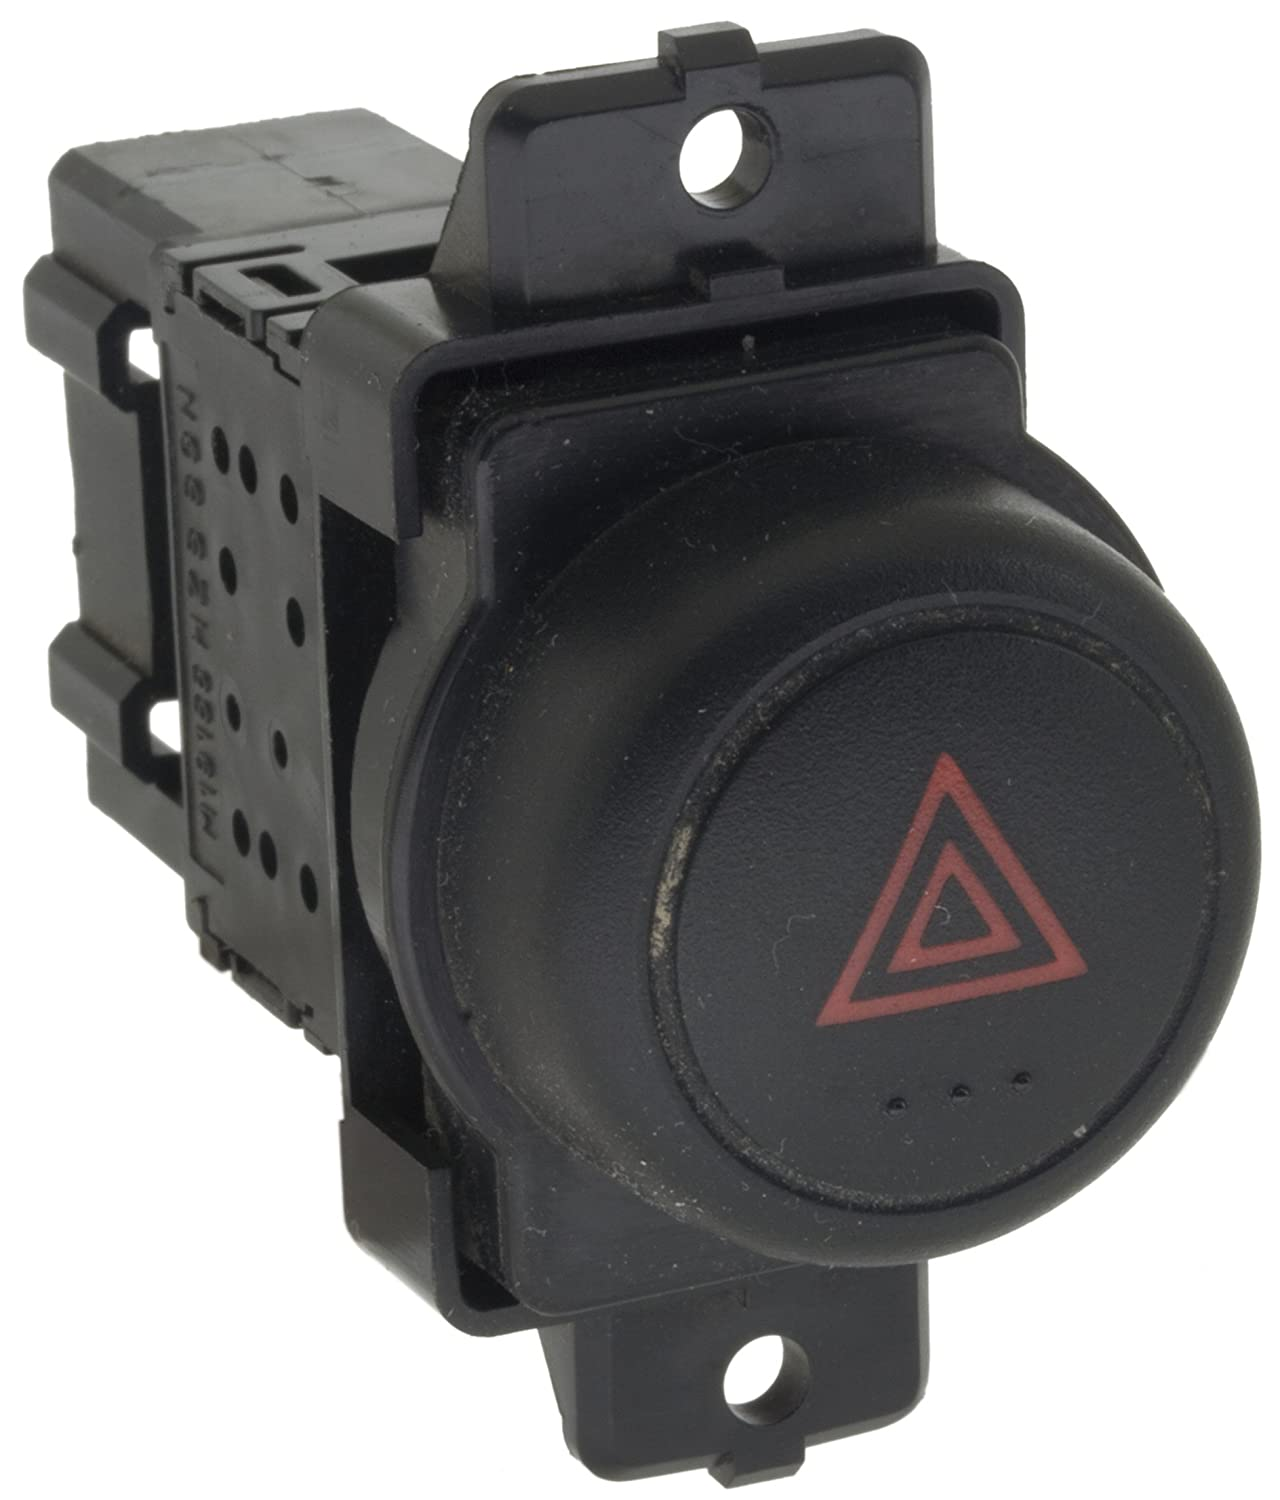 Wells SW6263 Hazard Warning Switch